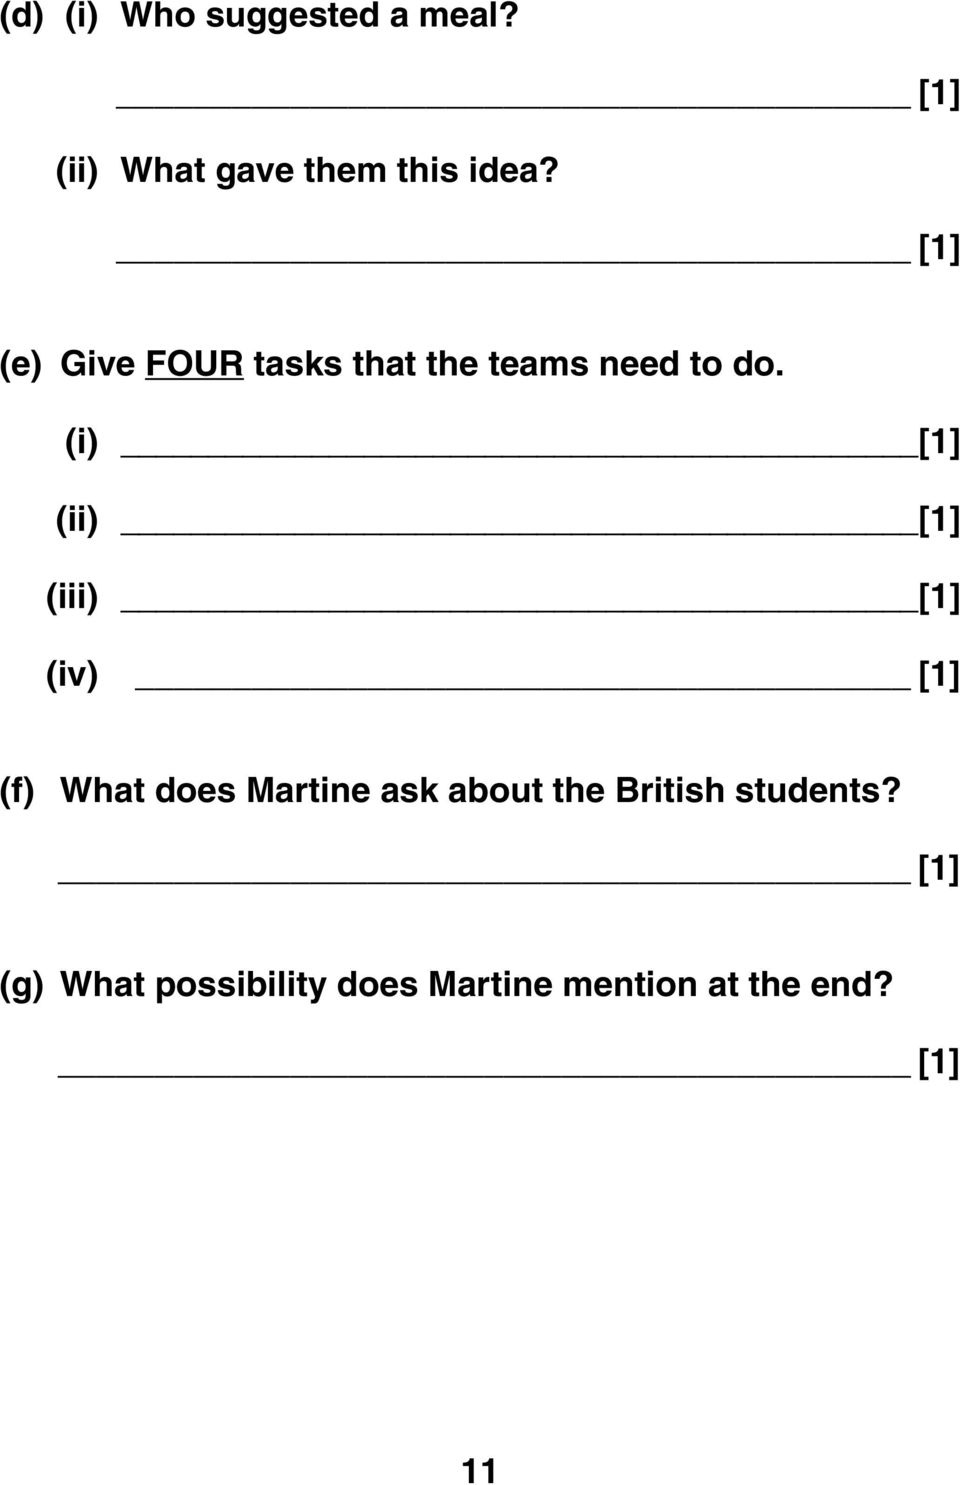 (i) [1] (ii) [1] (iii) [1] (iv) [1] (f) What does Martine ask about